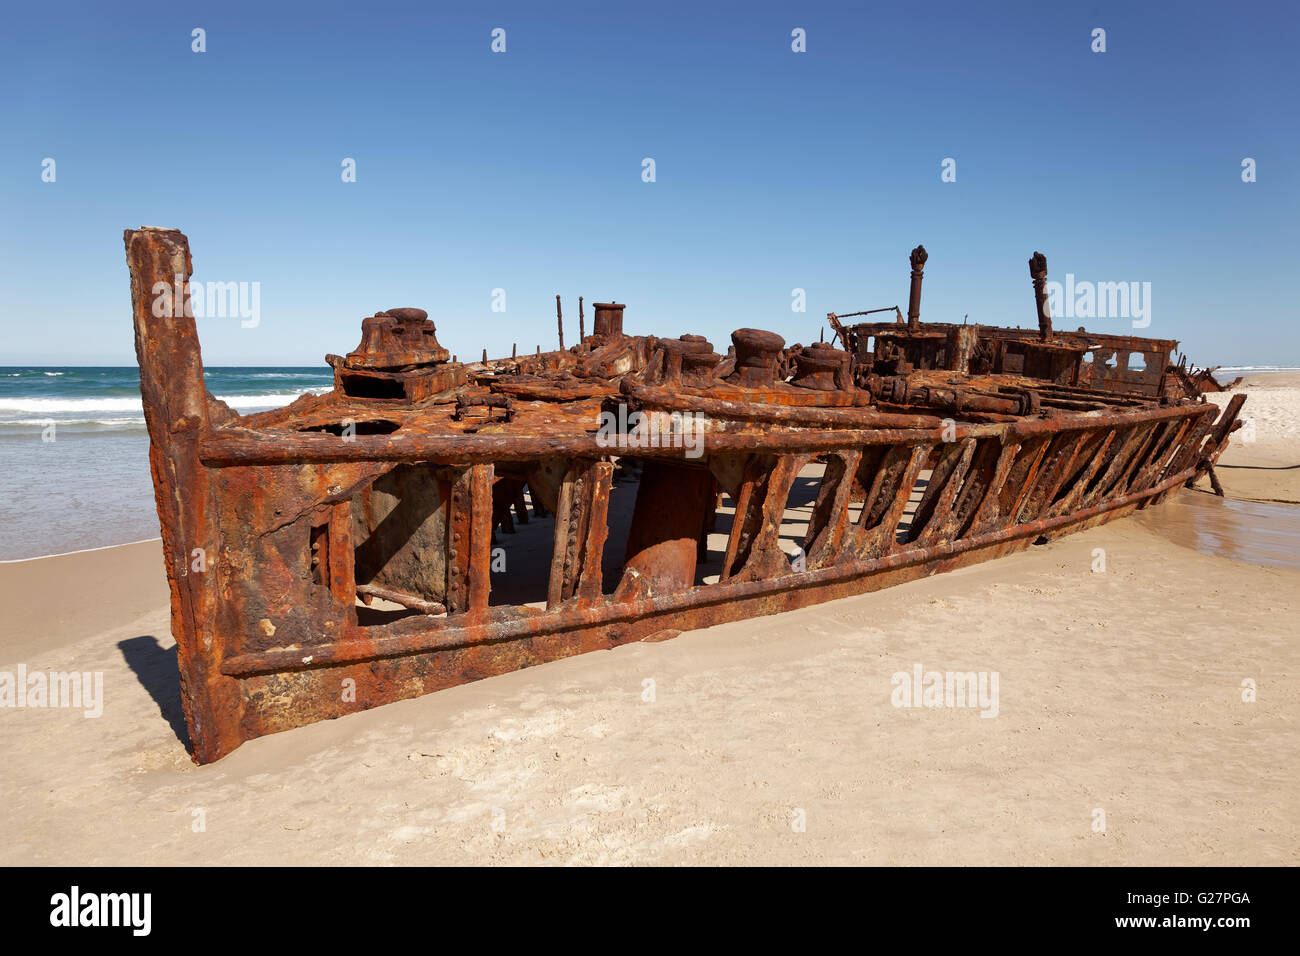 Wreck, luxury liner SS. Maheno, ran aground on the beach on 09.07.1935, 75 Mile Beach Road, official Highway - Stock Image